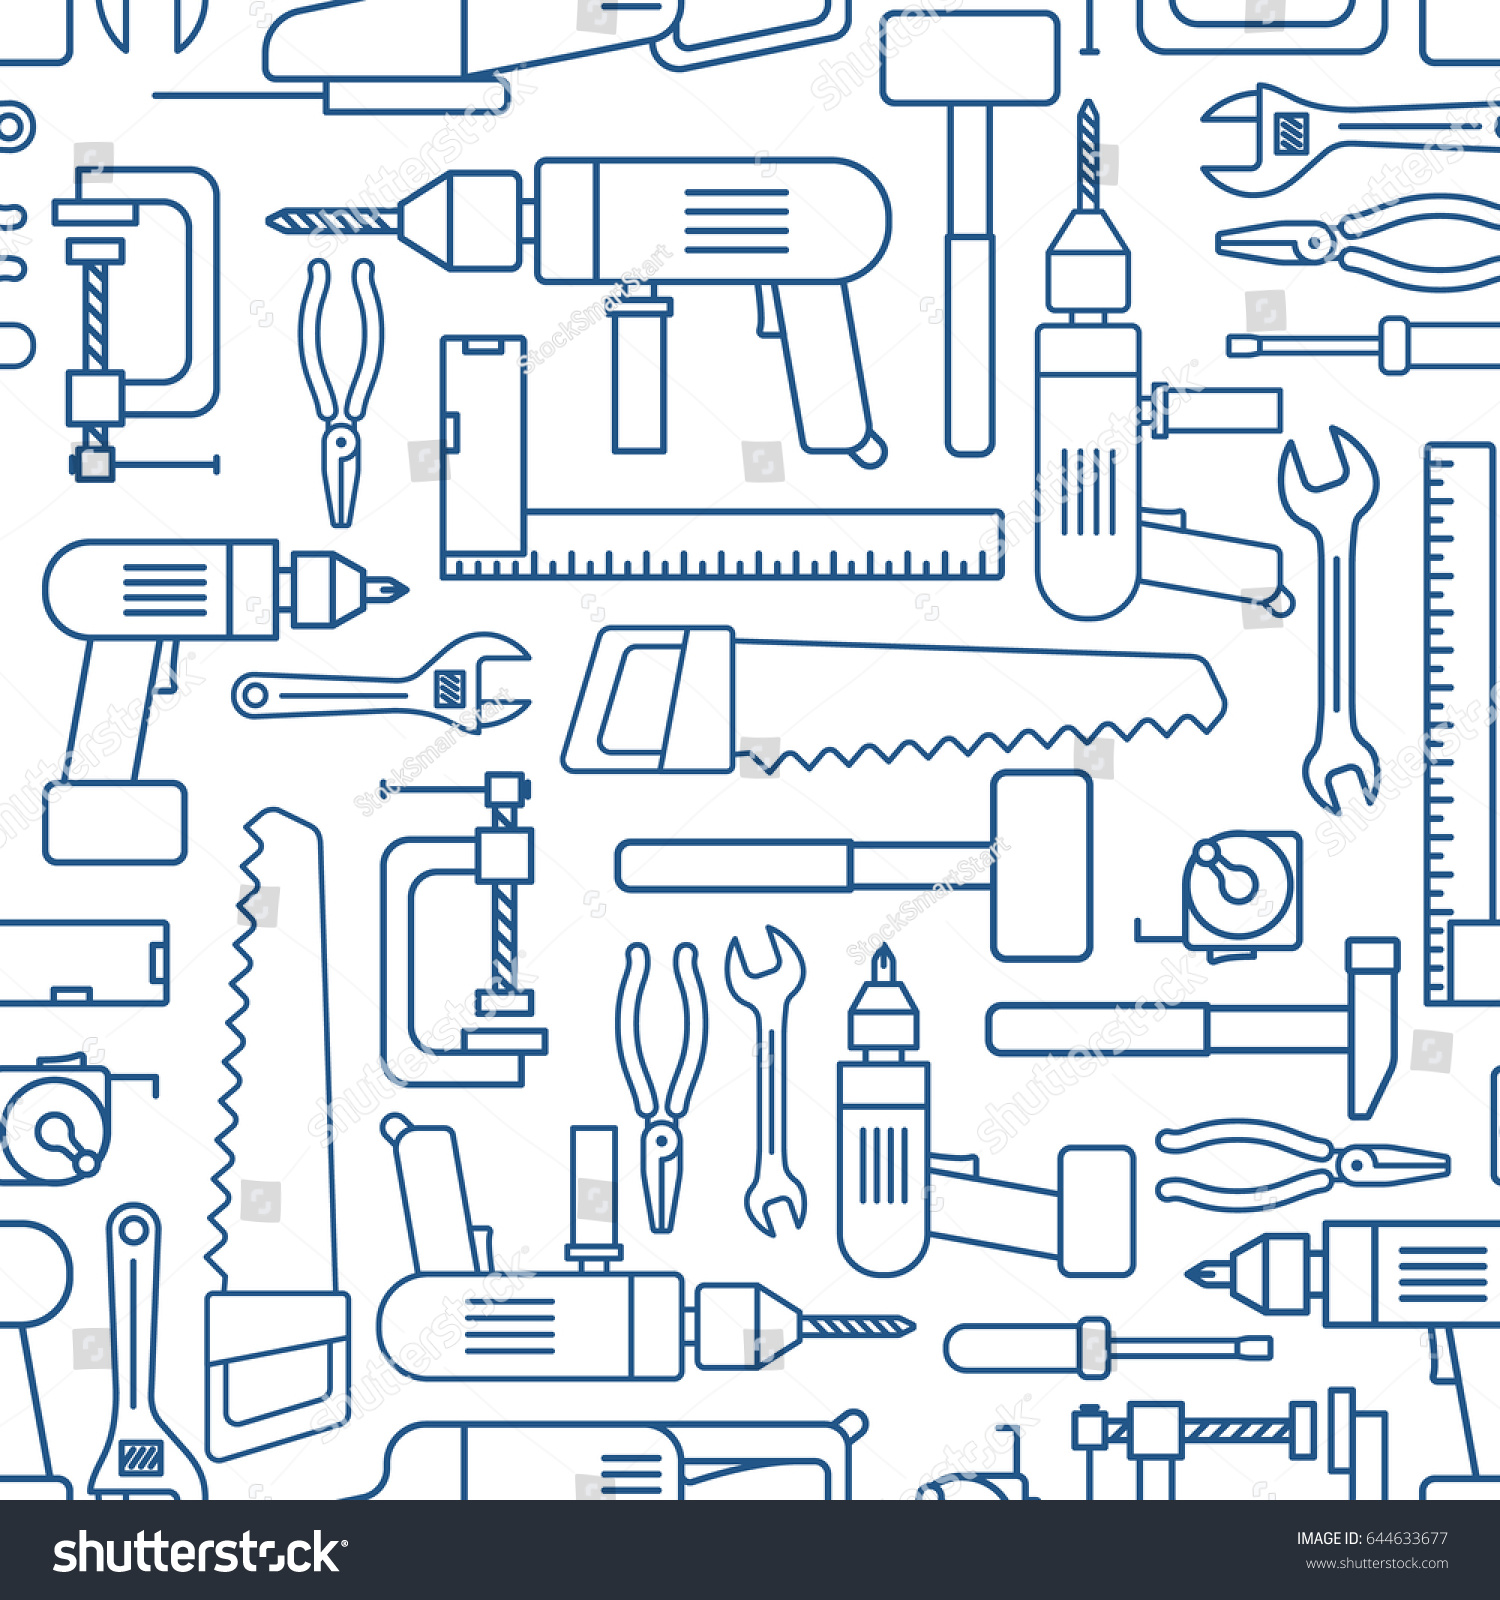 Hardware Tool Set Linear Seamless Pattern Vector Carpenter Or Locksmith Working Tools Thin Line Wallpaper